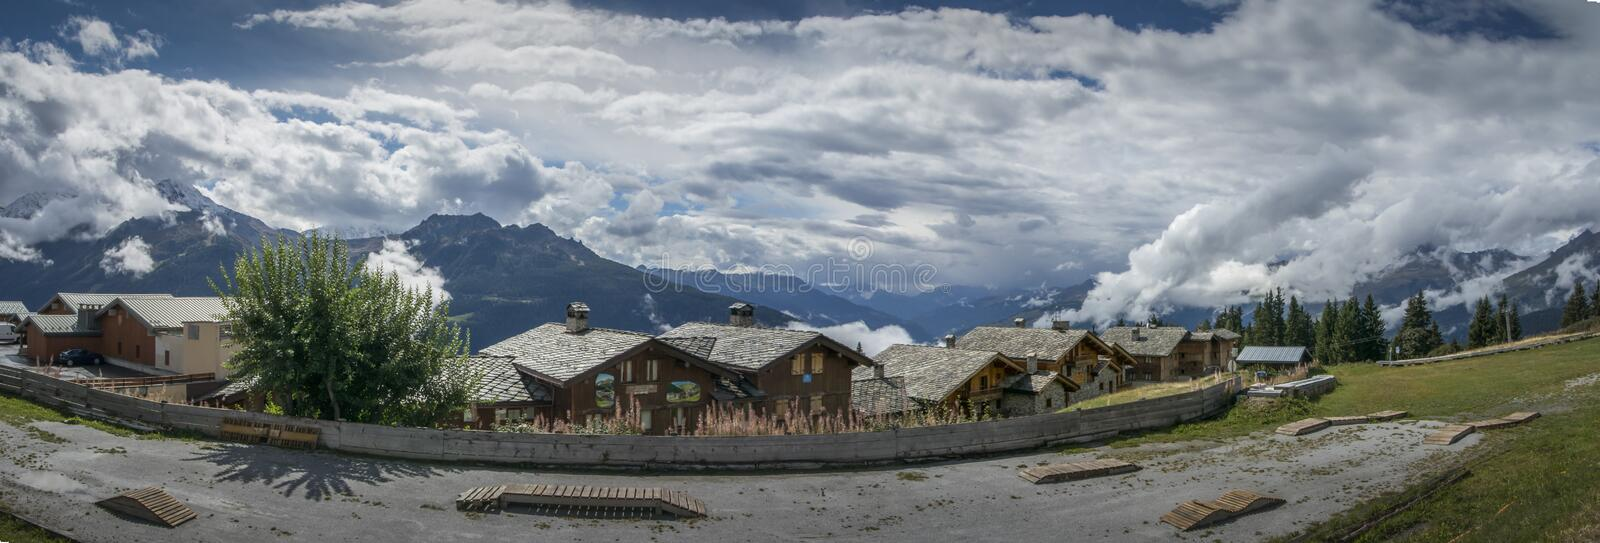 Panoramic View of the Alps. Panorama of the French Alps with Chalets in the foreground at La Rosiere, France stock photos